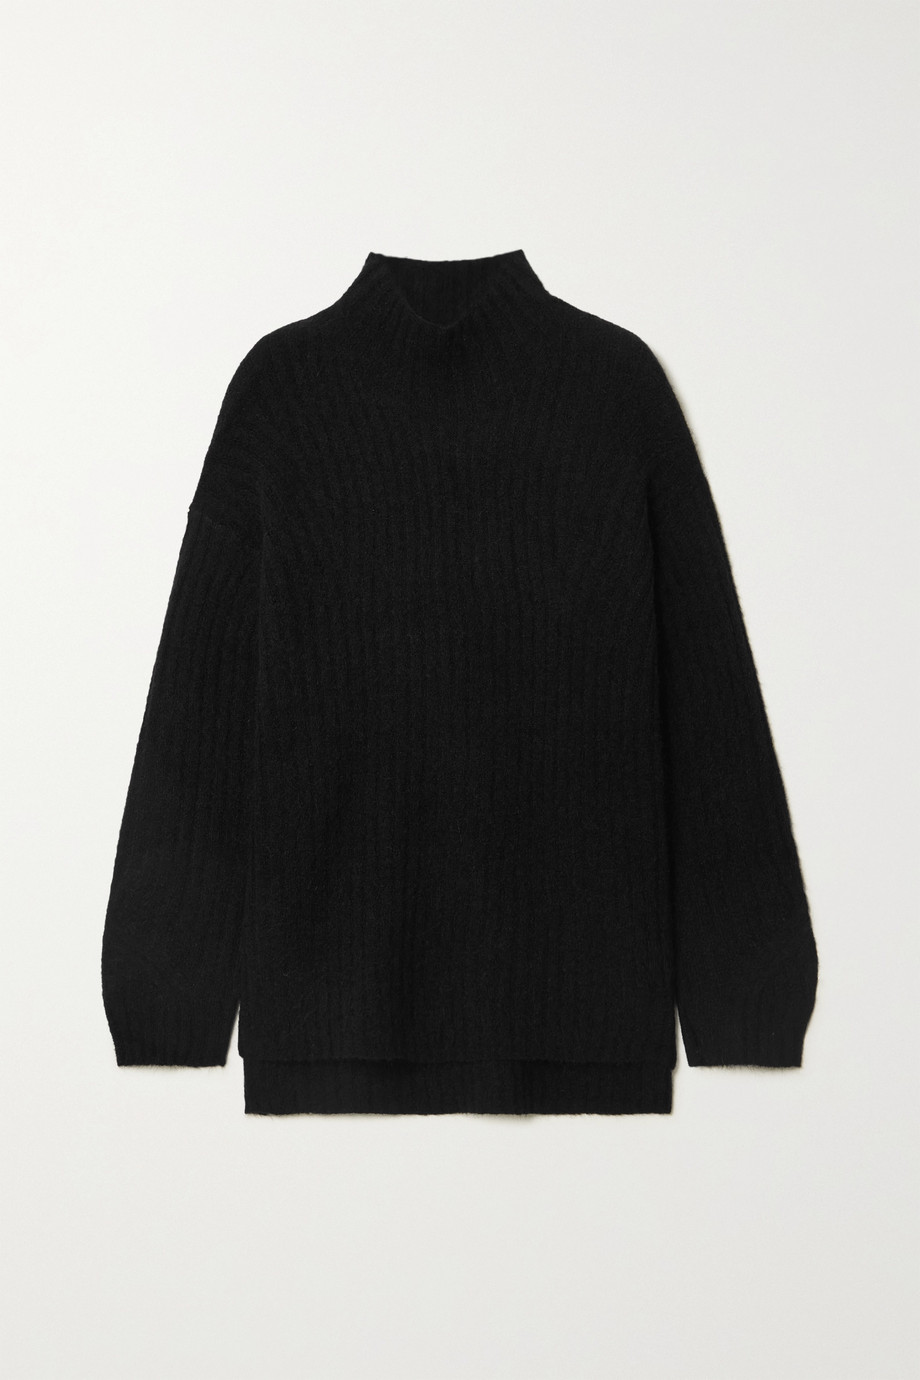 BY MALENE BIRGER Cyrhila oversized ribbed-knit sweater